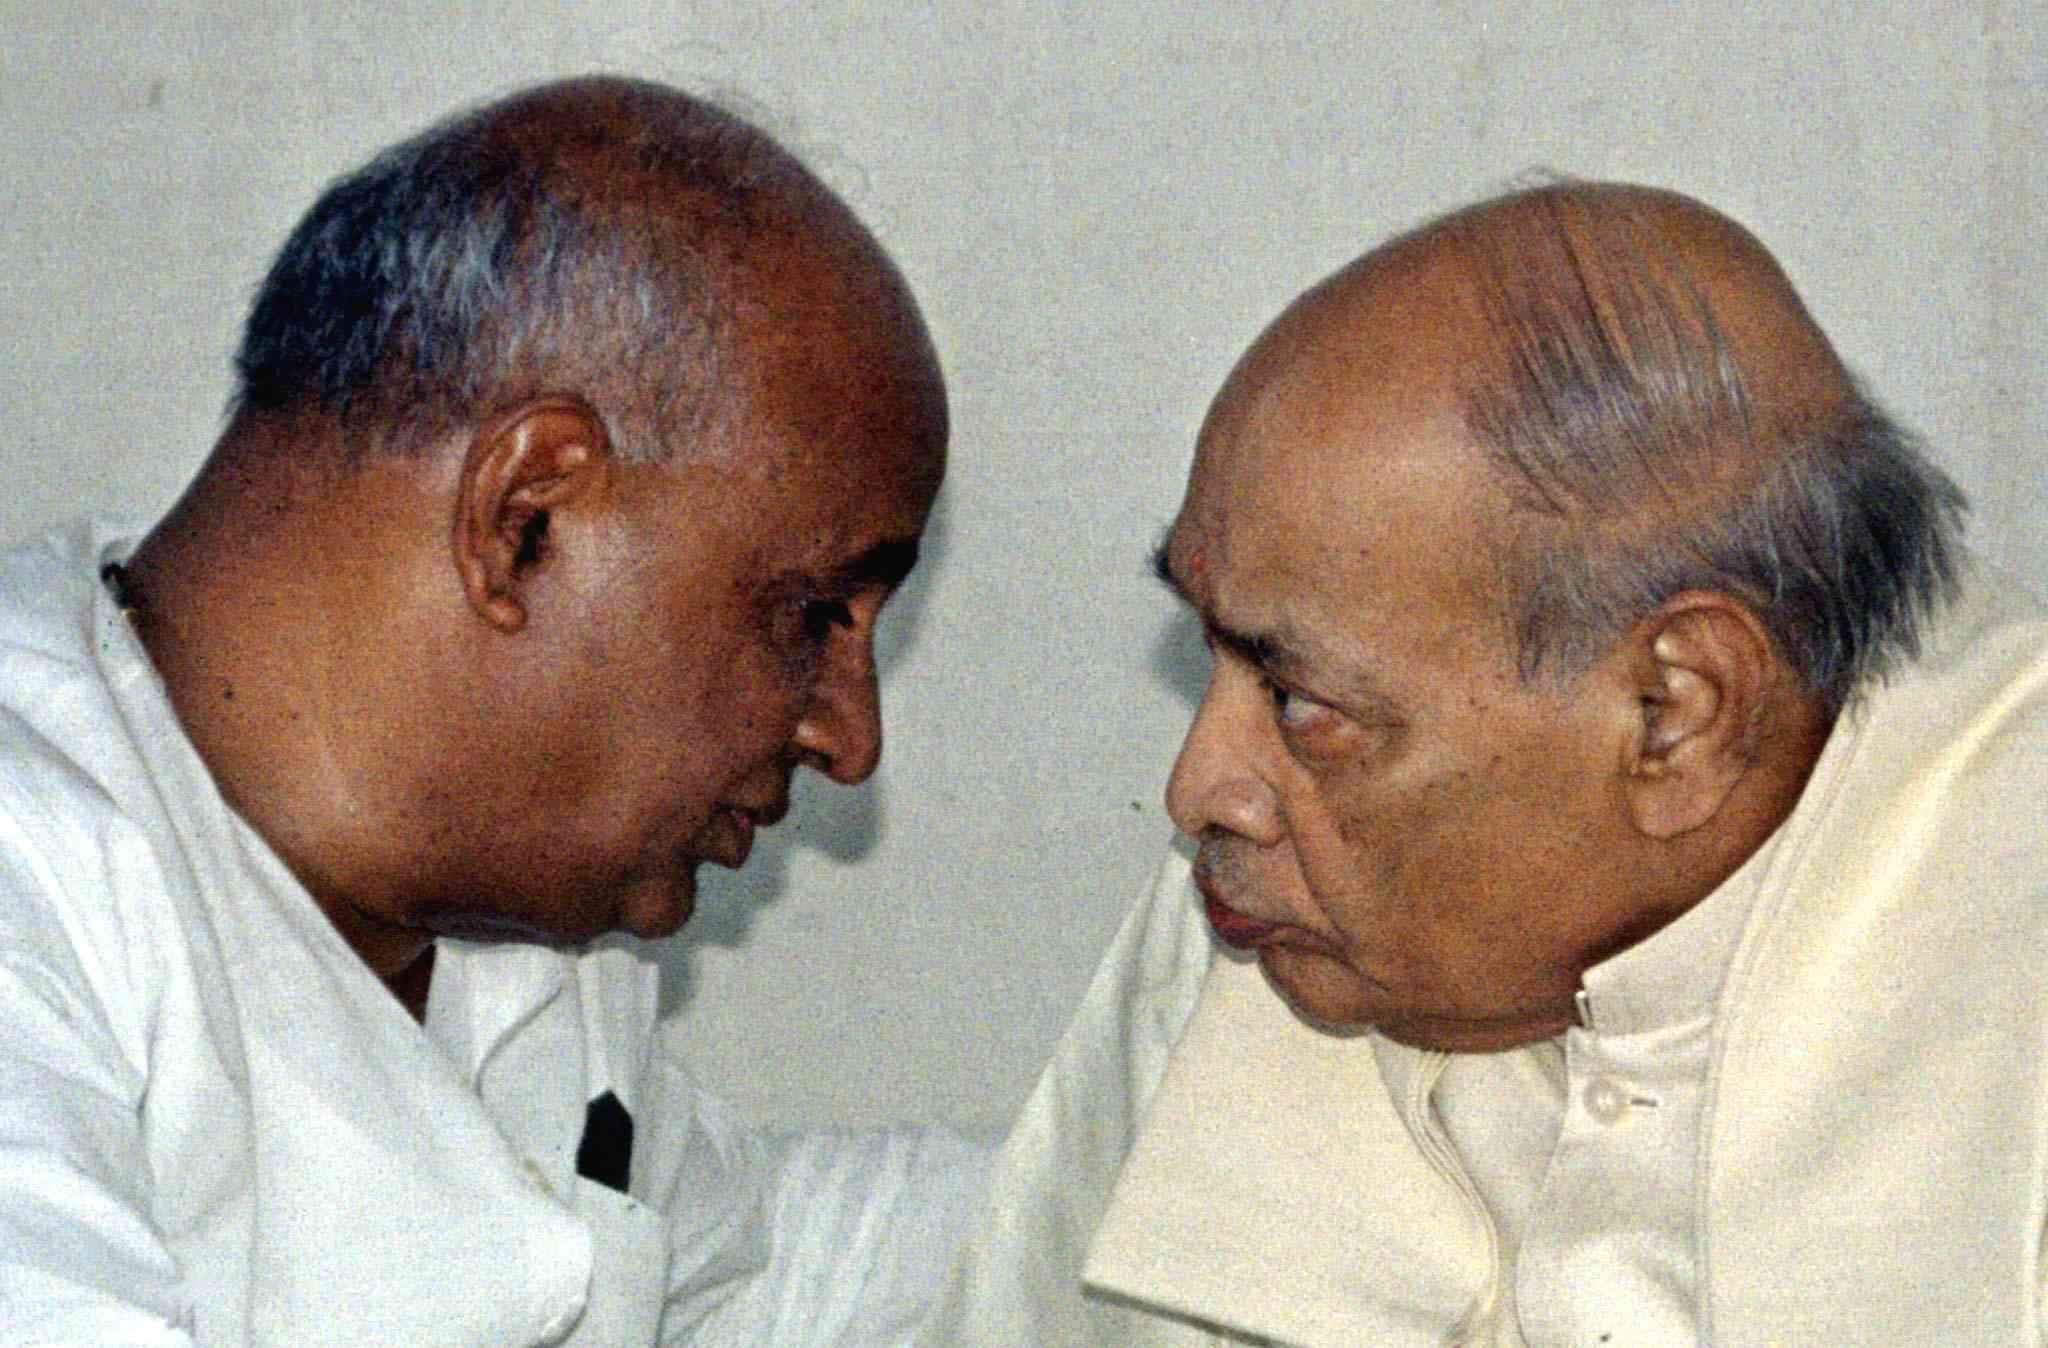 Prime Minister HD Deve Gowda with Congress leader PV Narasimha Rao in New Delhi on April 10, 1997. Gowda lost a trust vote the next day. (Photo credit: Reuters).